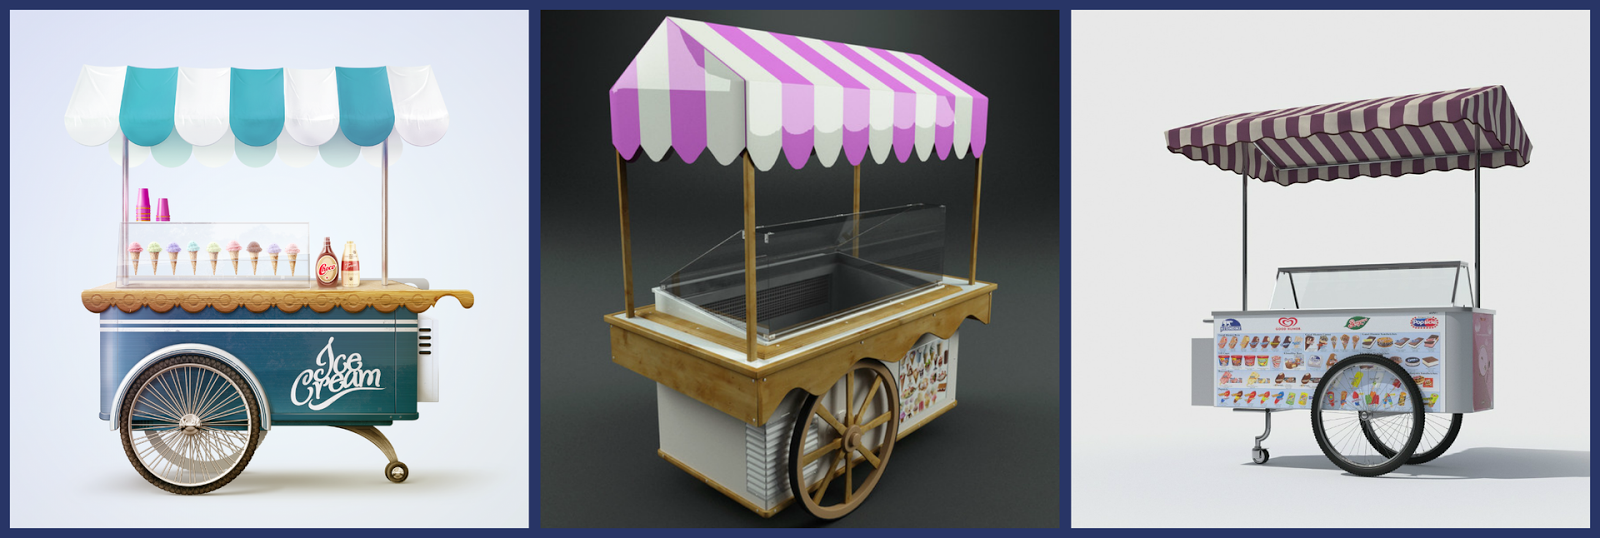 Candy Kiosk | Mall kiosk | Food Kiosk Manufacturer Ands Supplier In uae